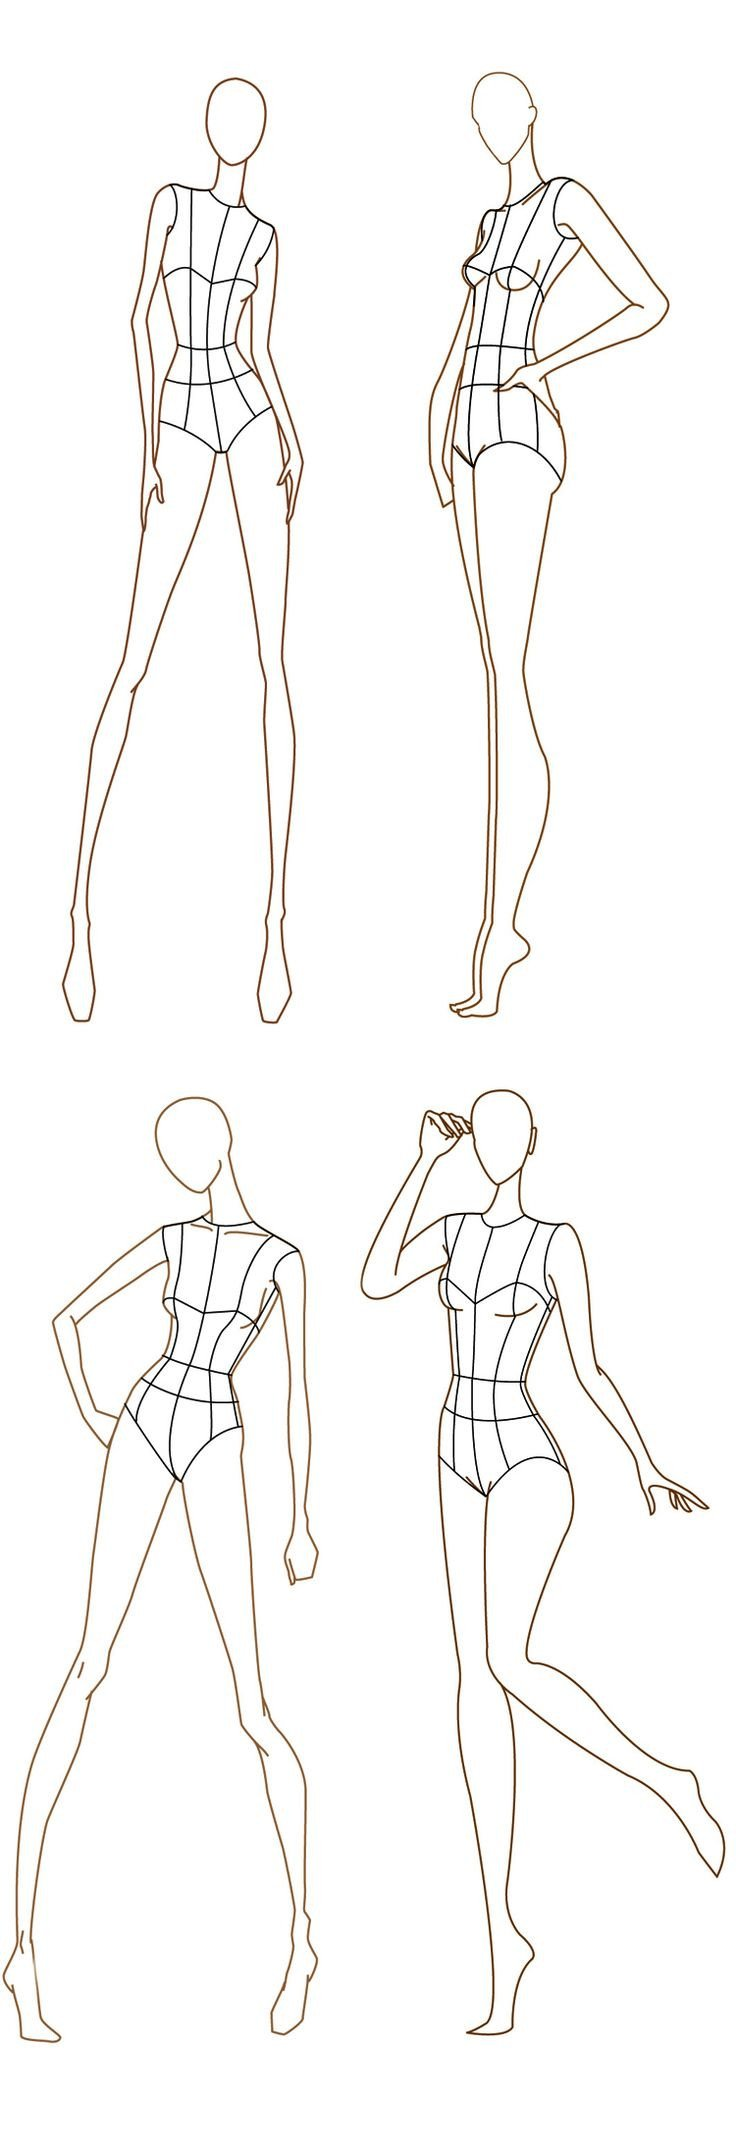 Body Template for Fashion Design 1000 Images About Fashion Illustration Templates On